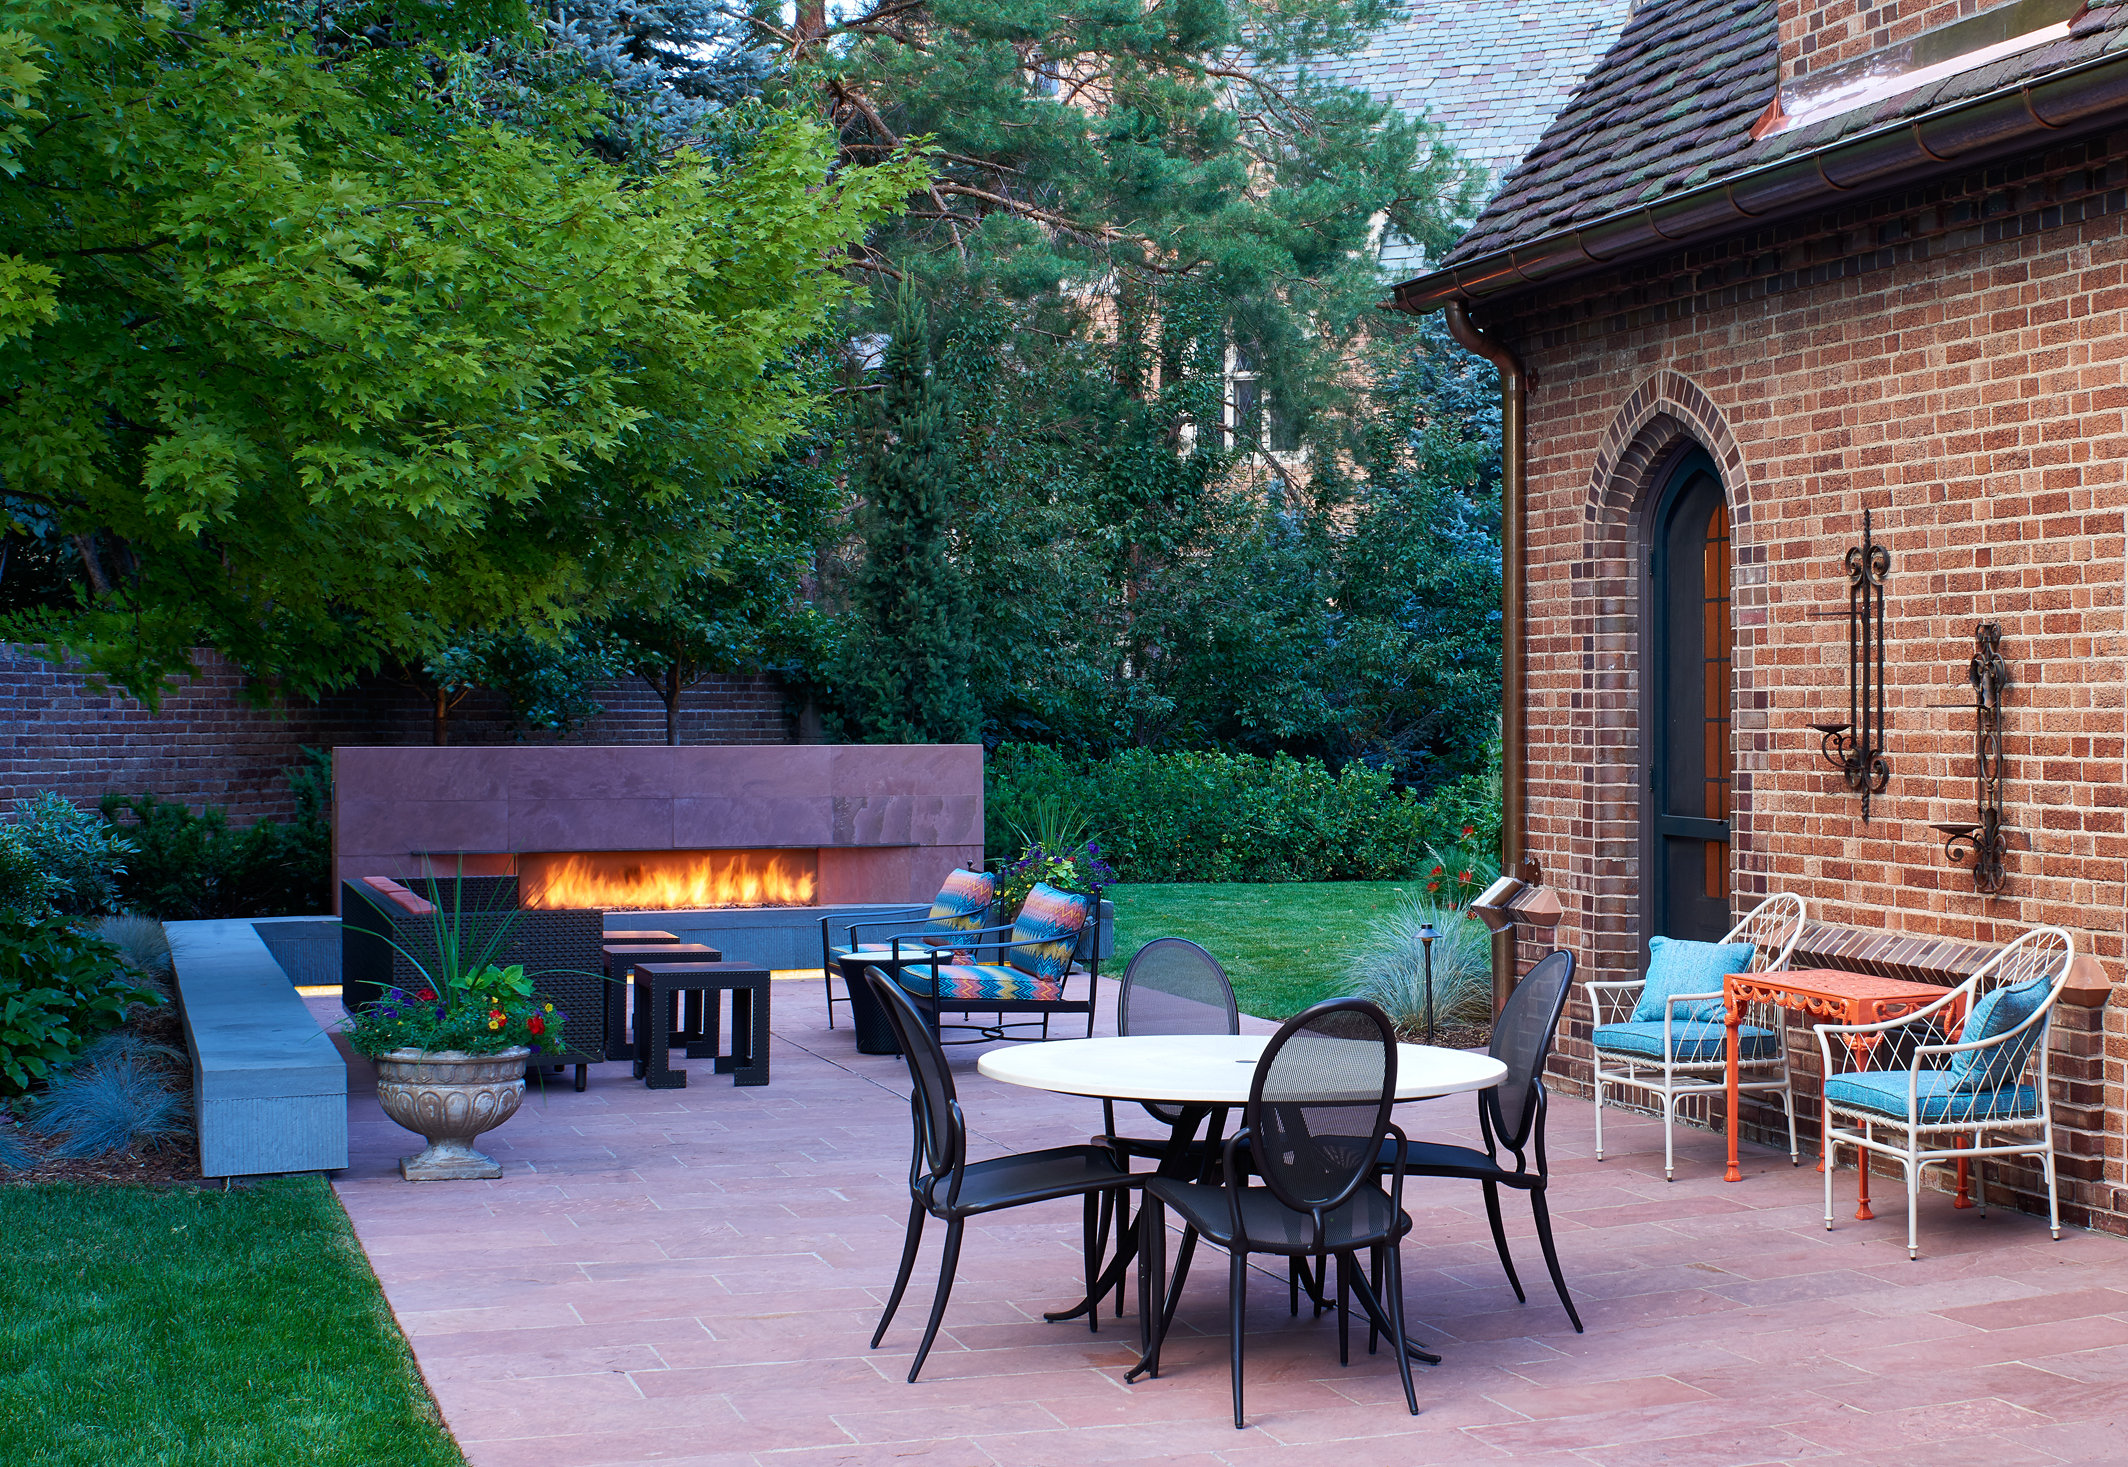 hawthorne-fireplace-patio-twilight-crop